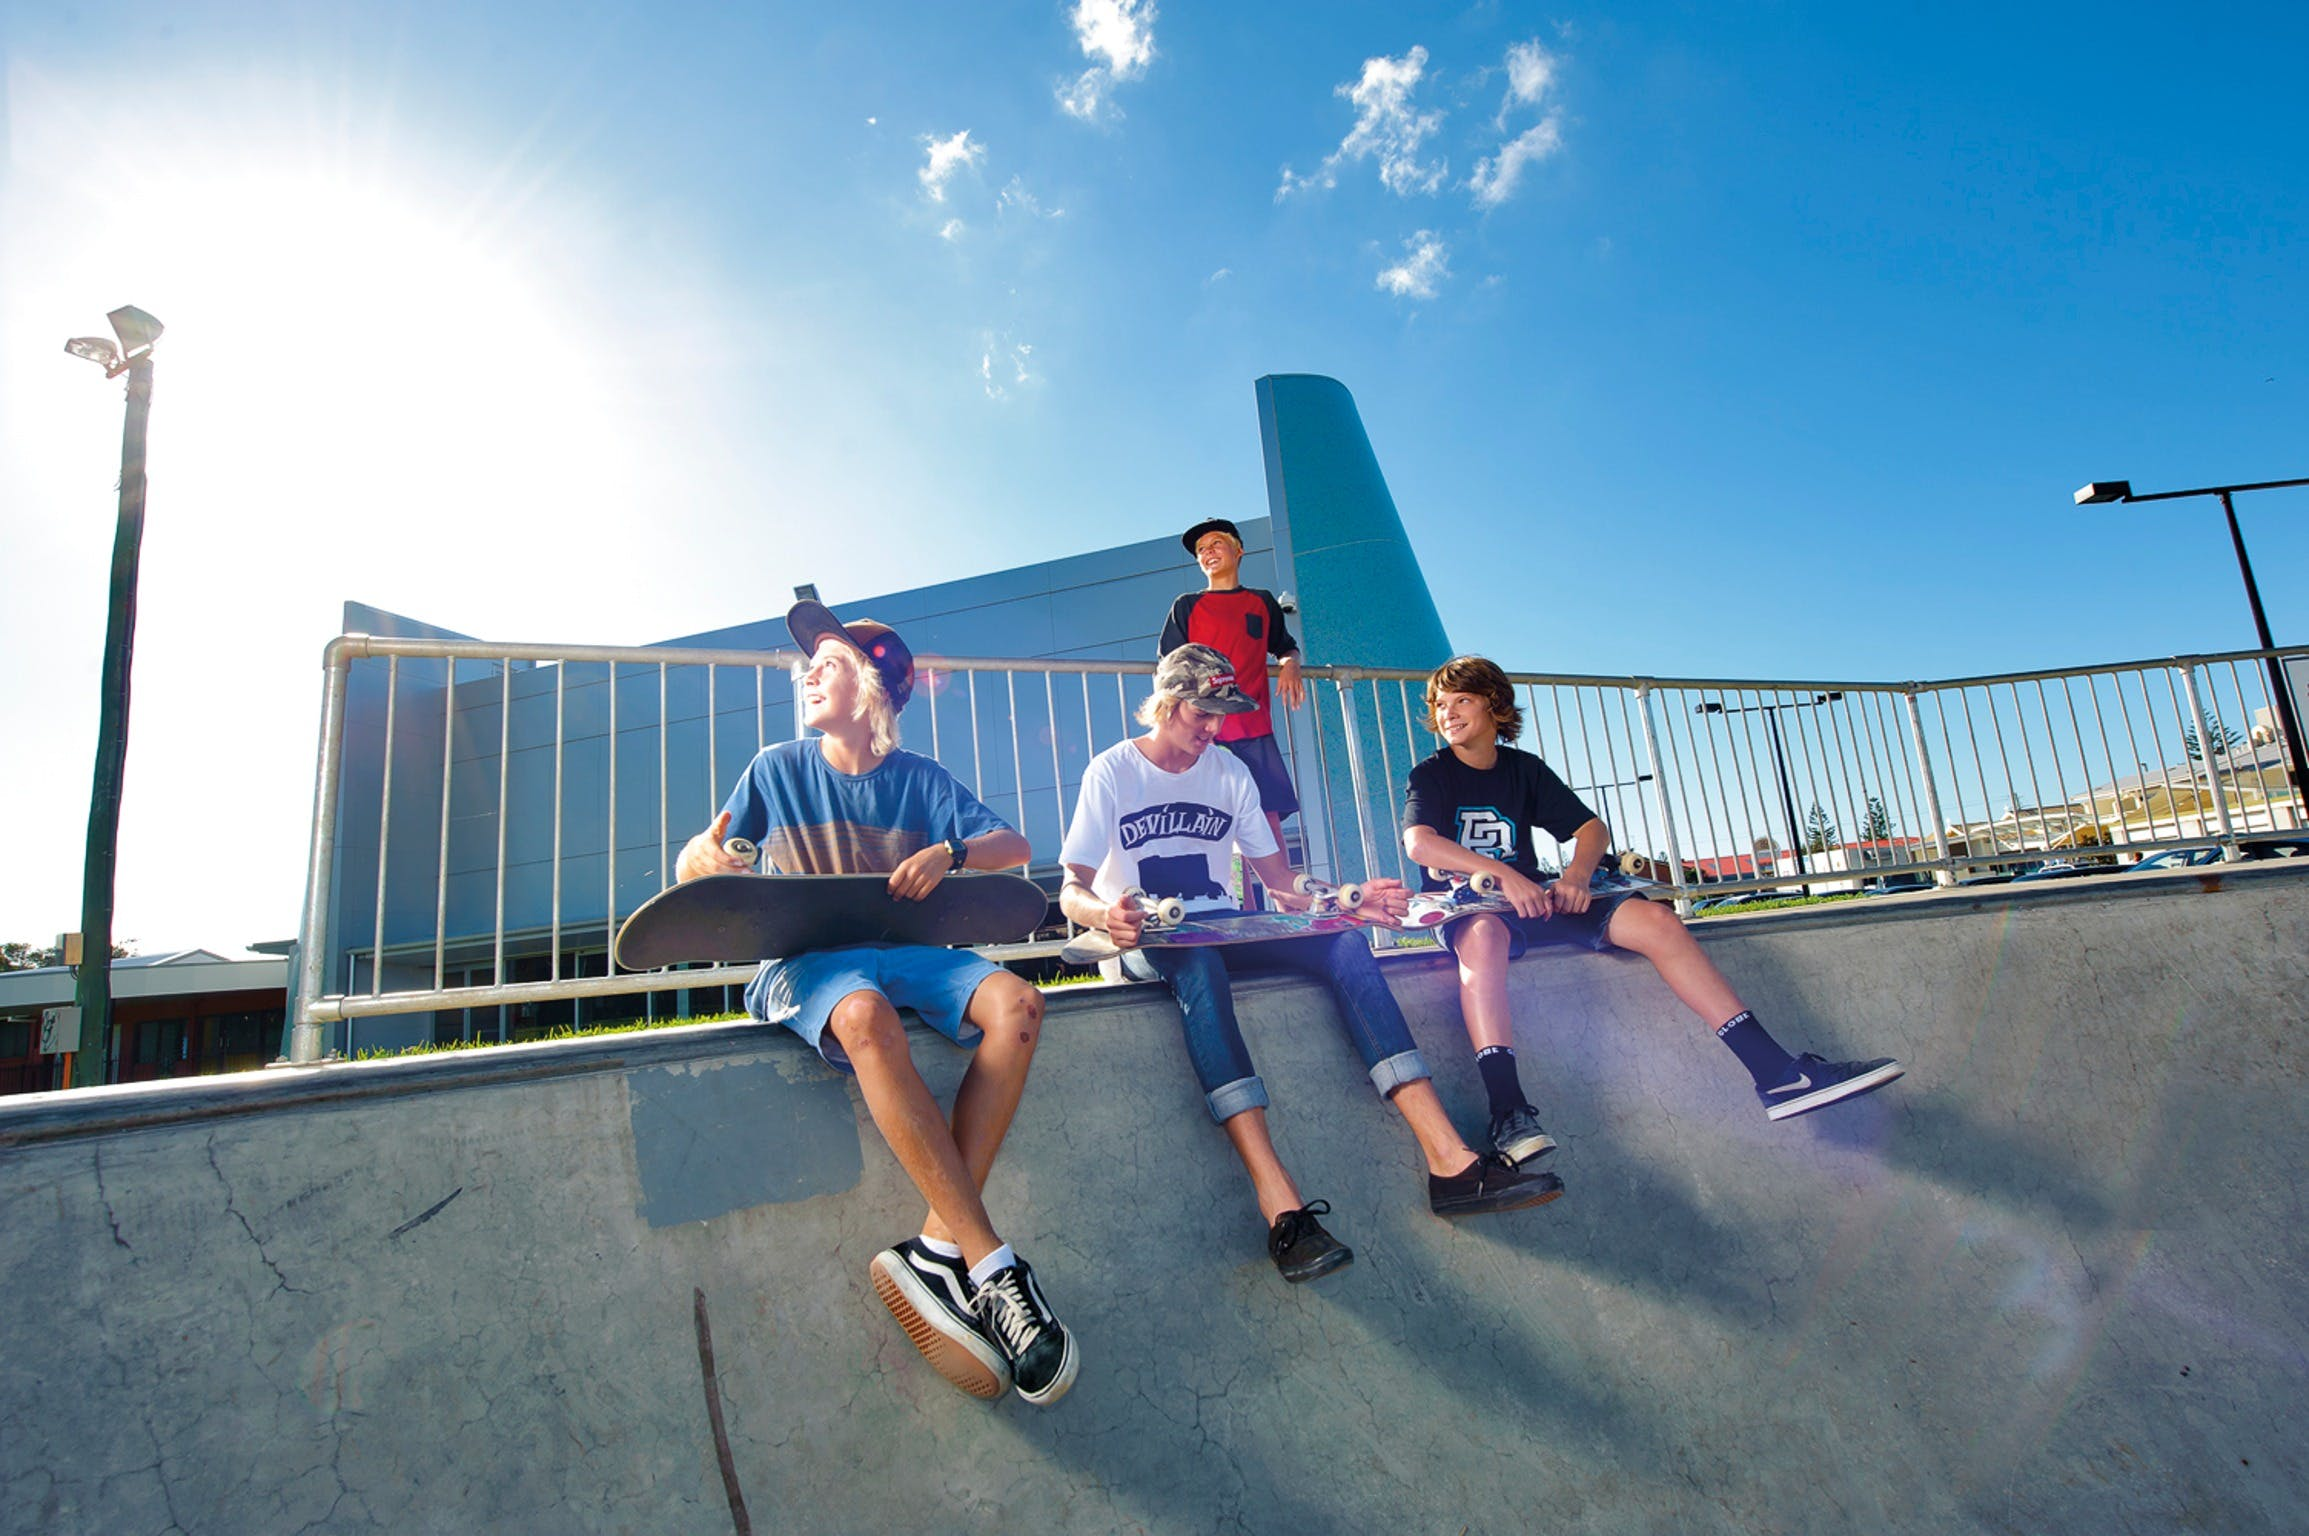 Fair Go Skate Comp - Palm Beach Accommodation